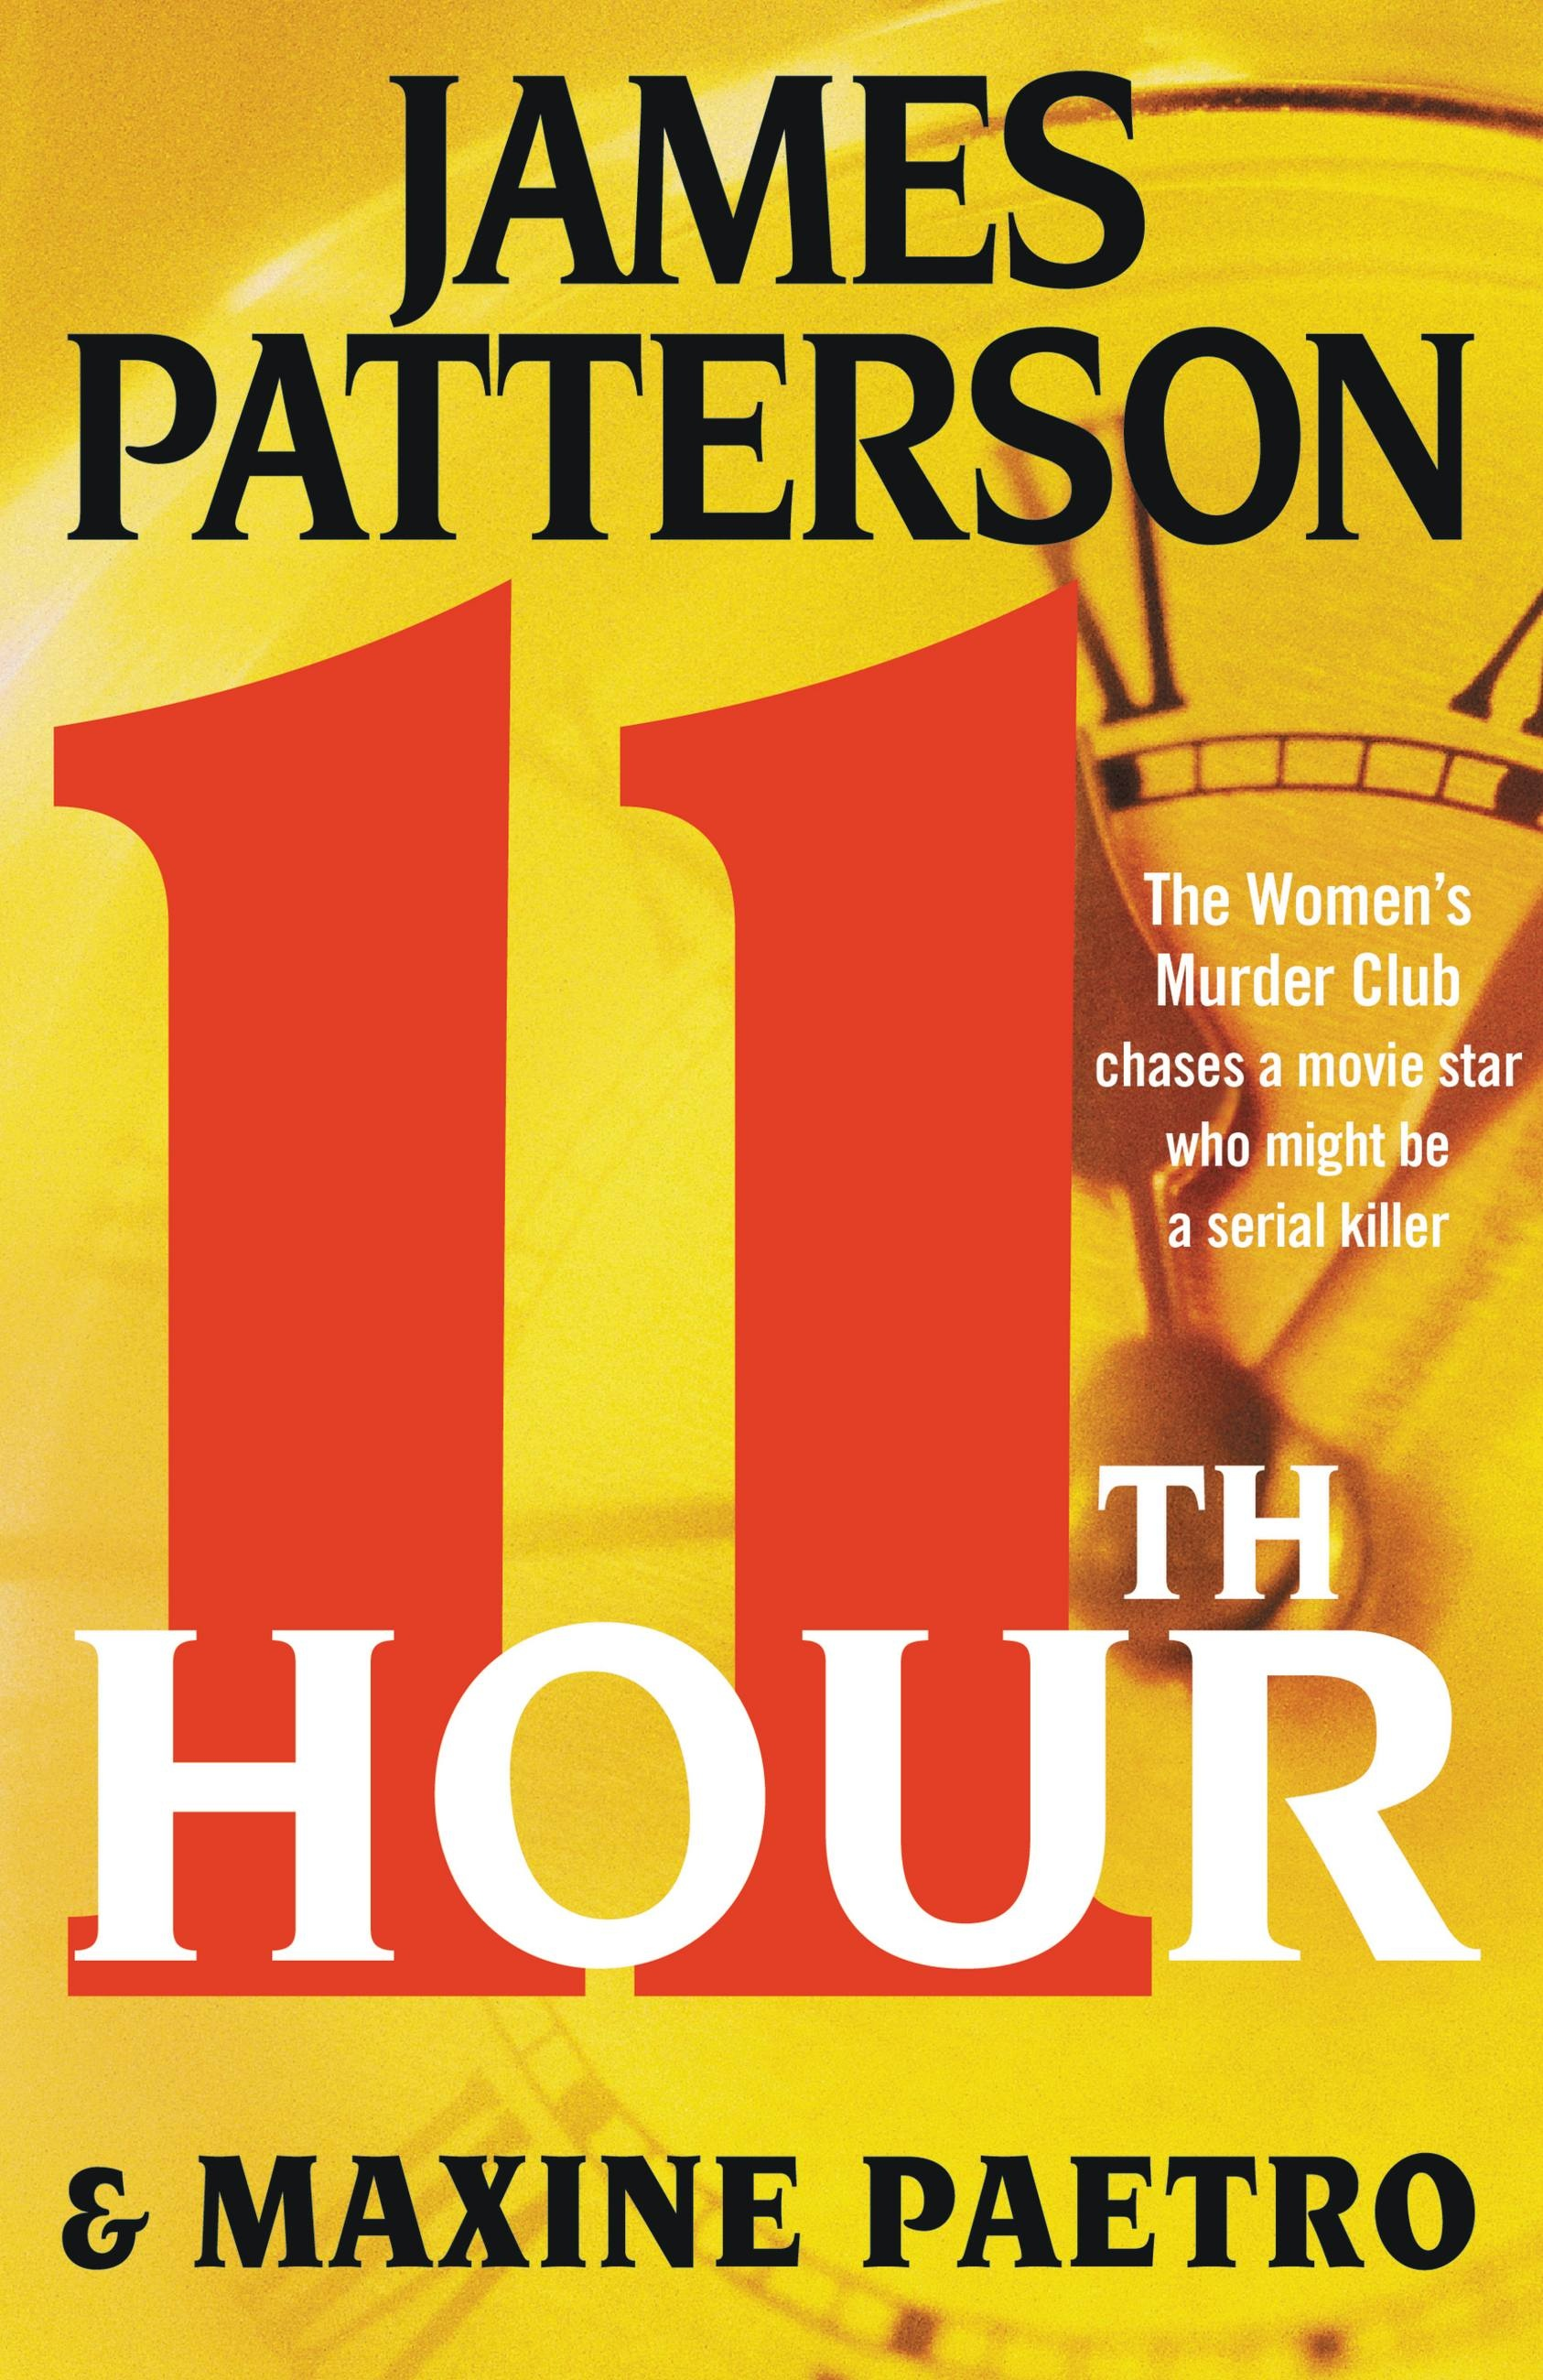 11th Hour by James Patterson | Hachette Book Group